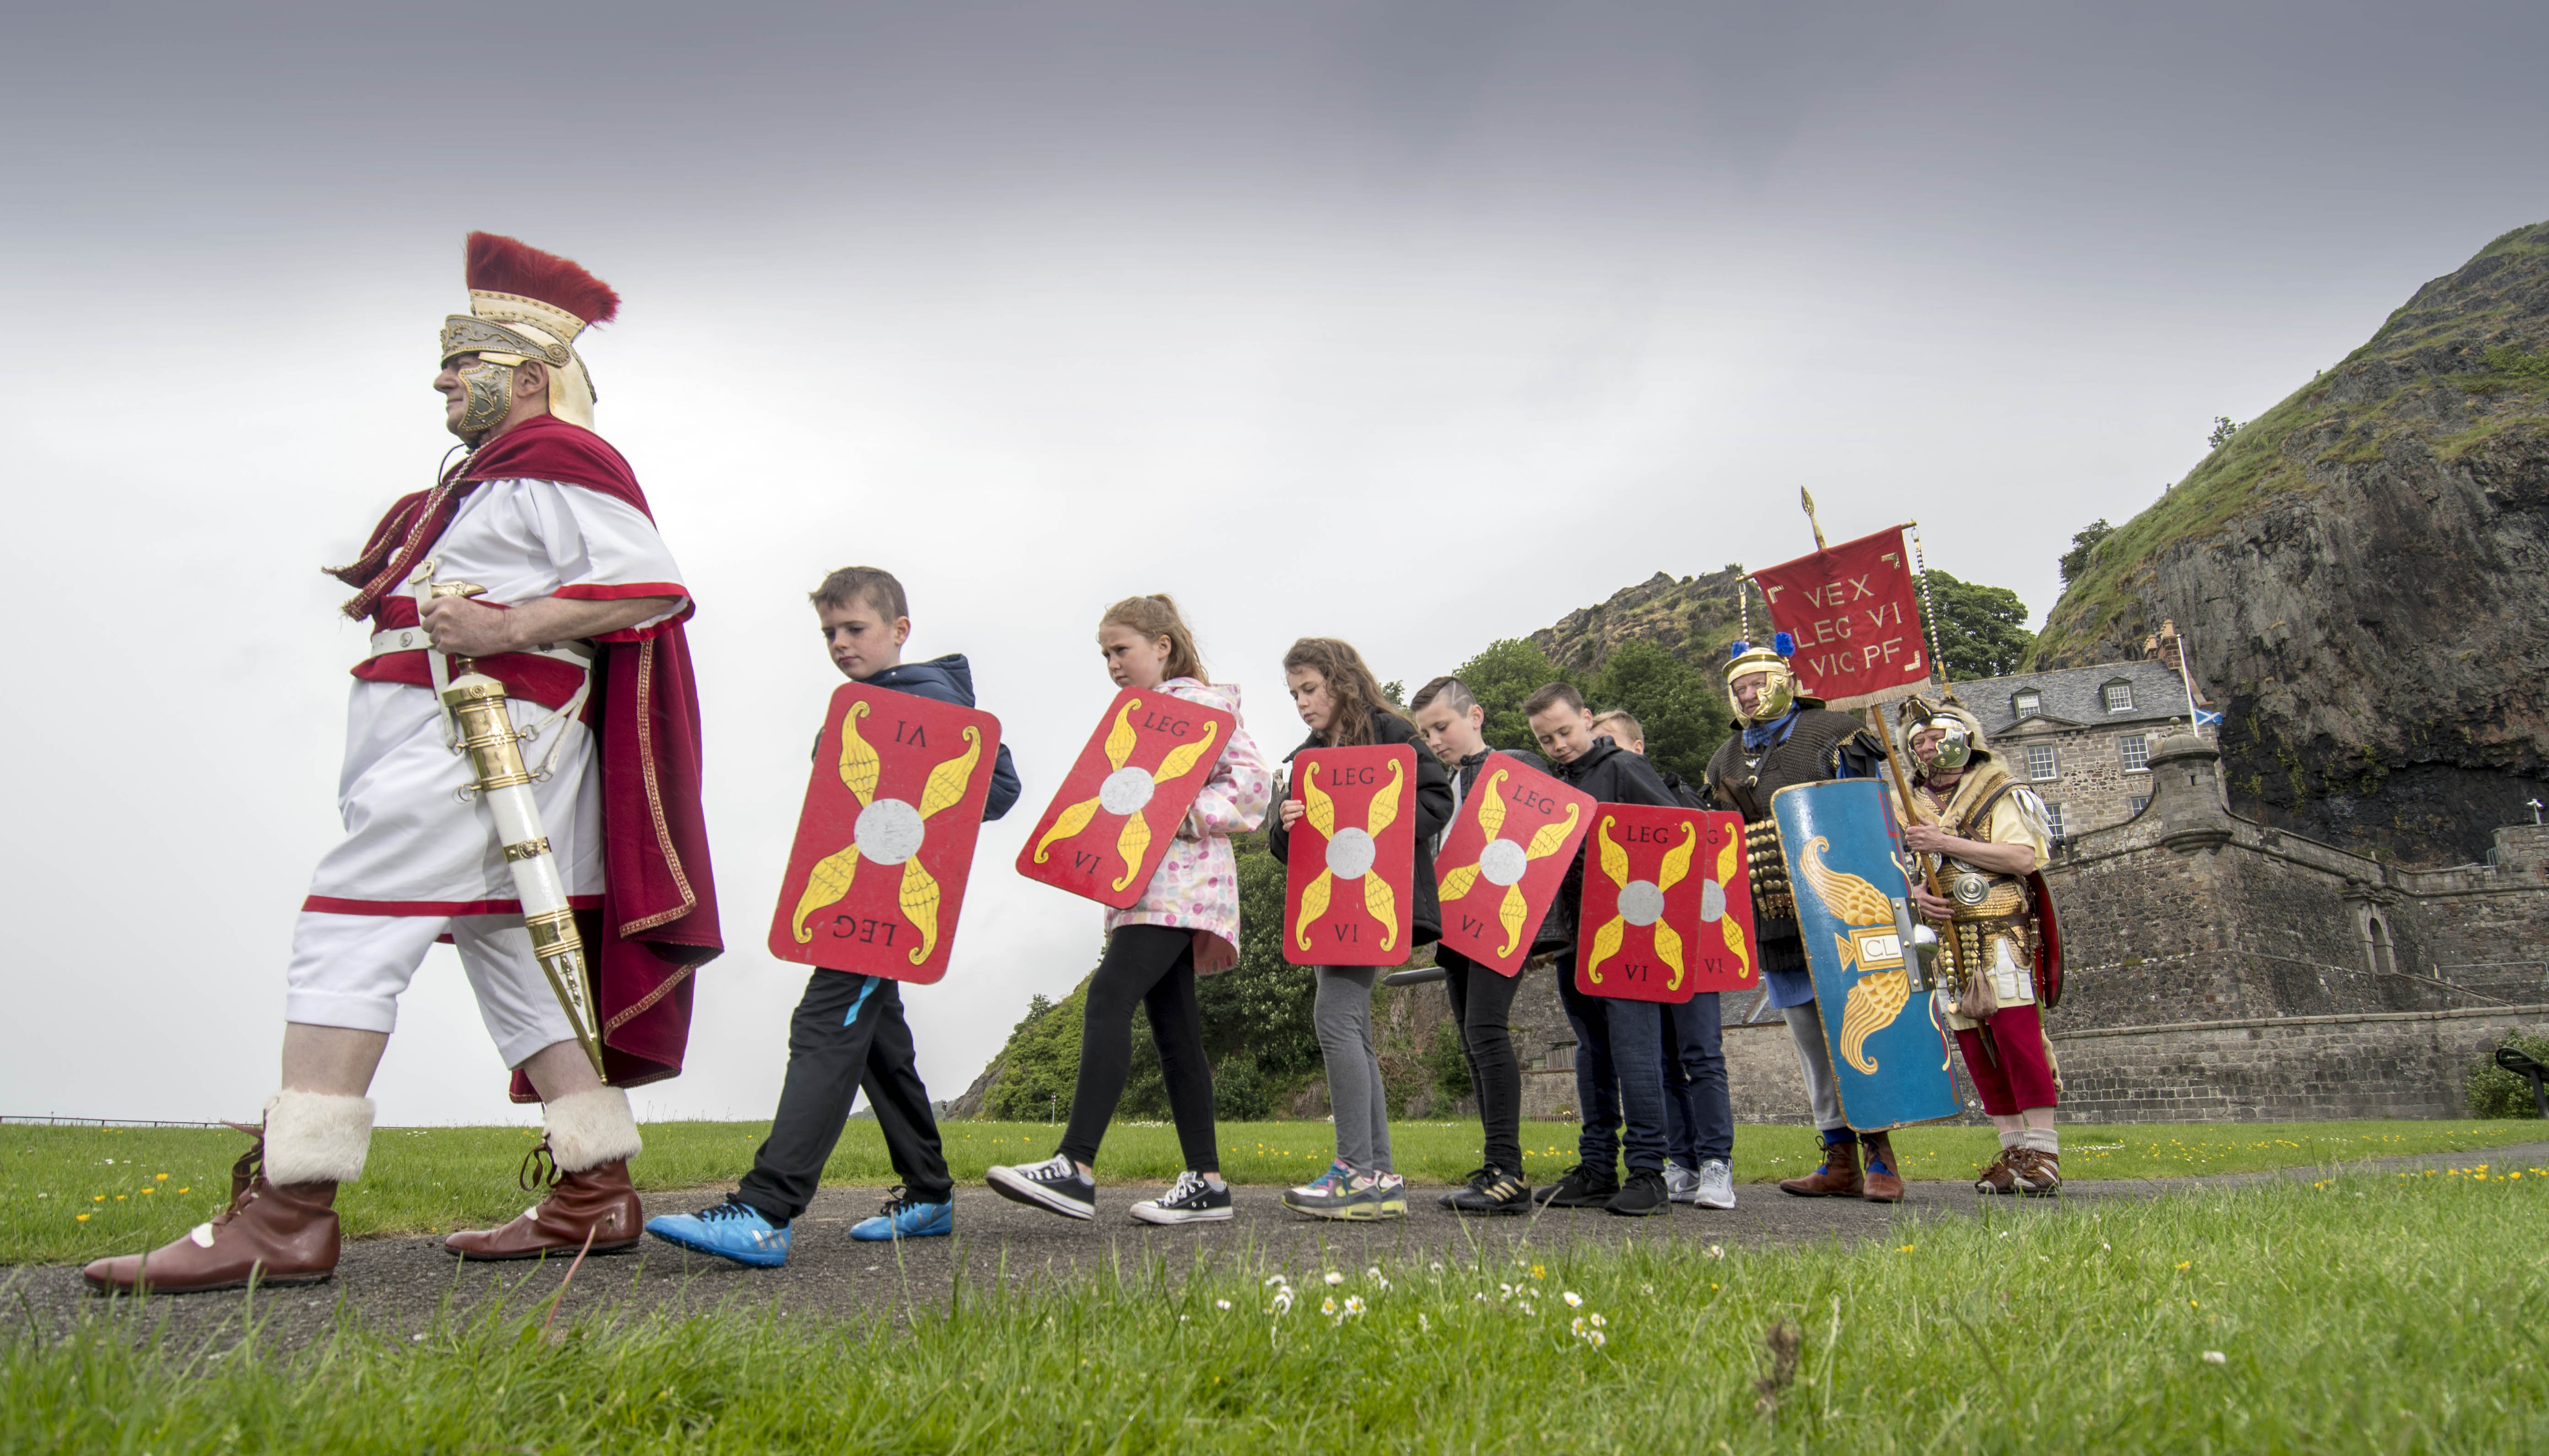 Historic Environment Scotland - Rock of Ages preview - Dumbarton Castle - John Richardson as Gaius Iulius Raetucus, a Tribune of the Antonine period, AD120, leads pupils from Dumbarton's Knoxhill Primary School and two soldiers of his Legion - picture by Donald MacLeod - 01.06.2017 - 07702 319 738 - clanmacleod@btinternet.com - www.donald-macleod.com